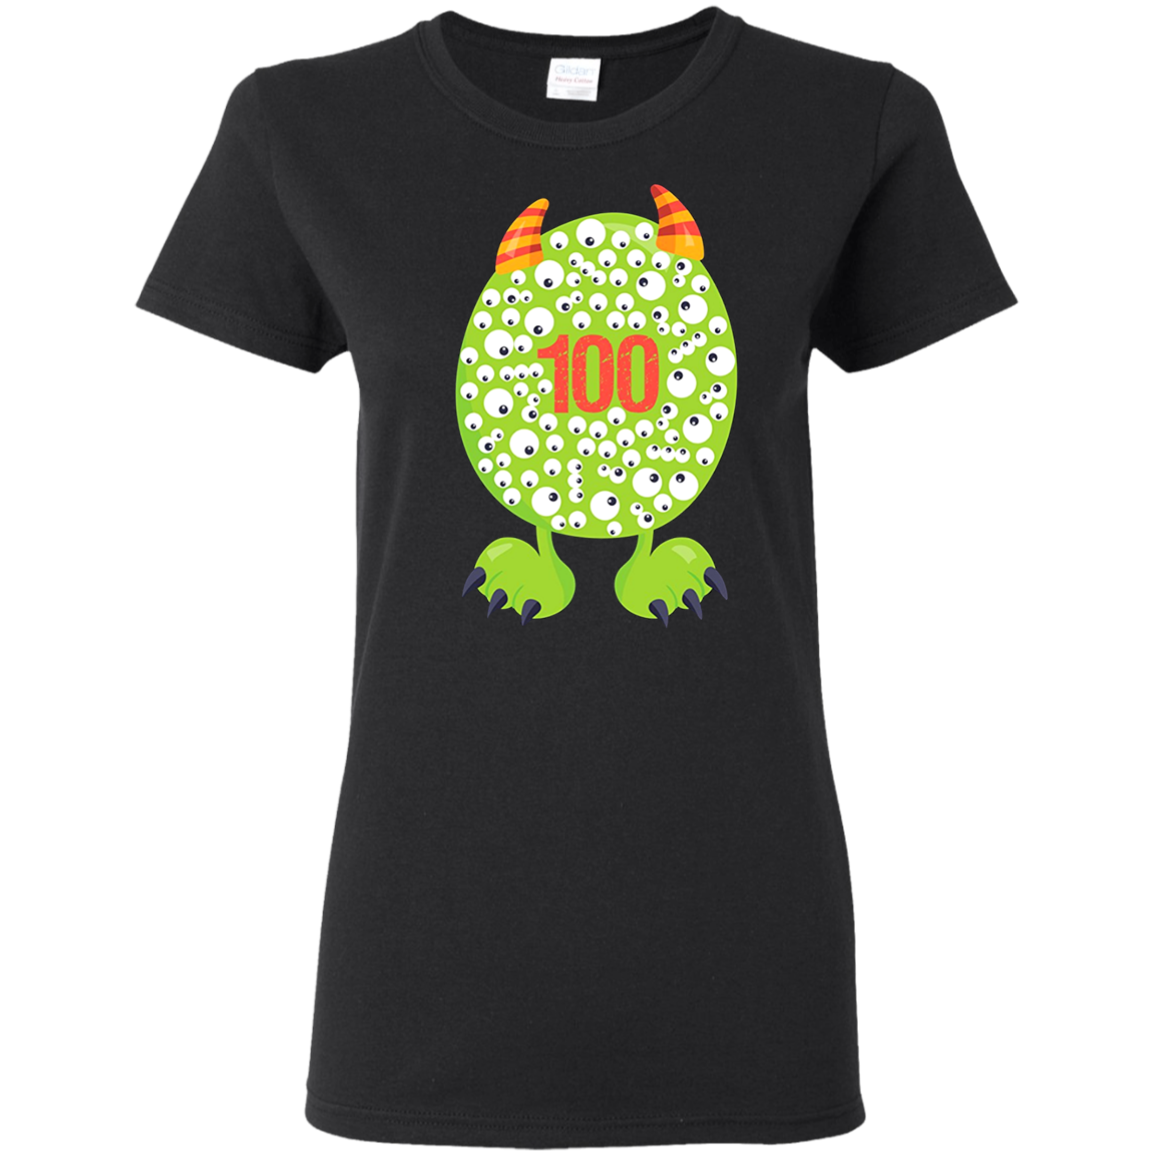 100th Day of School T Shirt Monster Happy 100 Days Kids Boy T shirt hoodie sweater Women 5.3